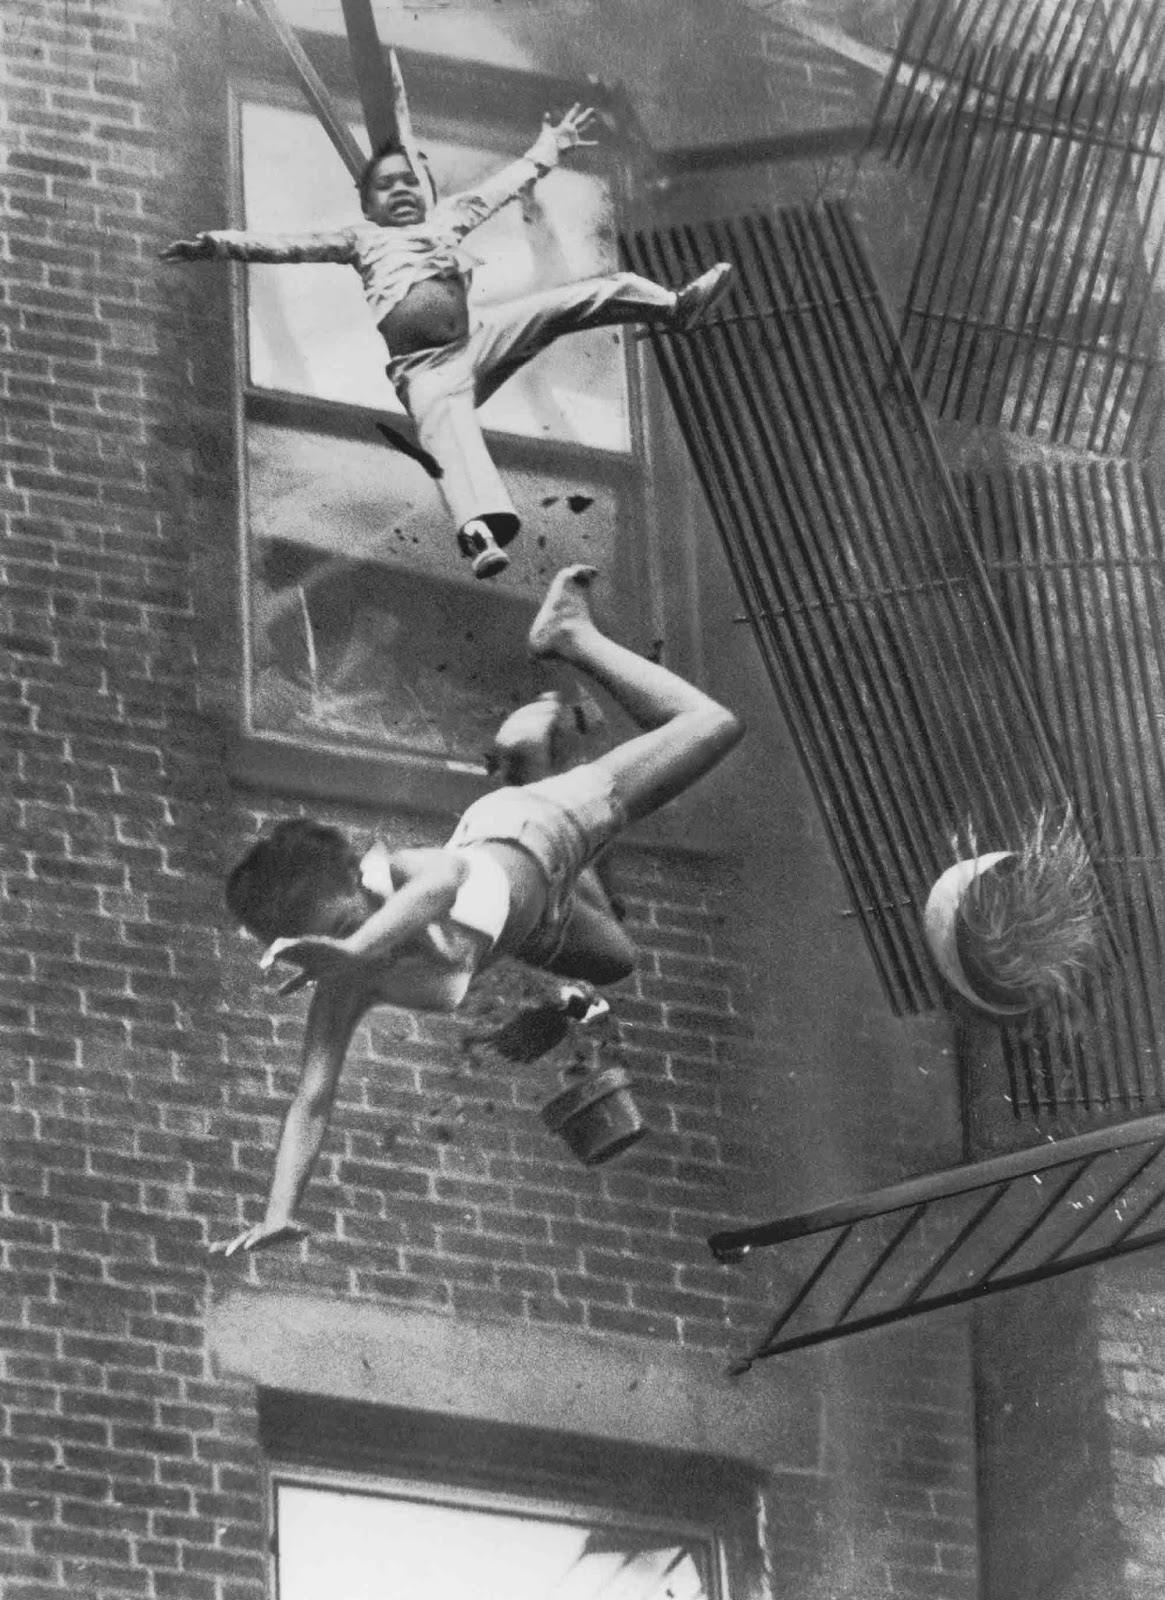 Fire Escape Collapse, also known as Fire on Marlborough Street, is a black-and-white photograph by Stanley Forman which received the Pulitzer Prize for Spot News Photography in 1976.